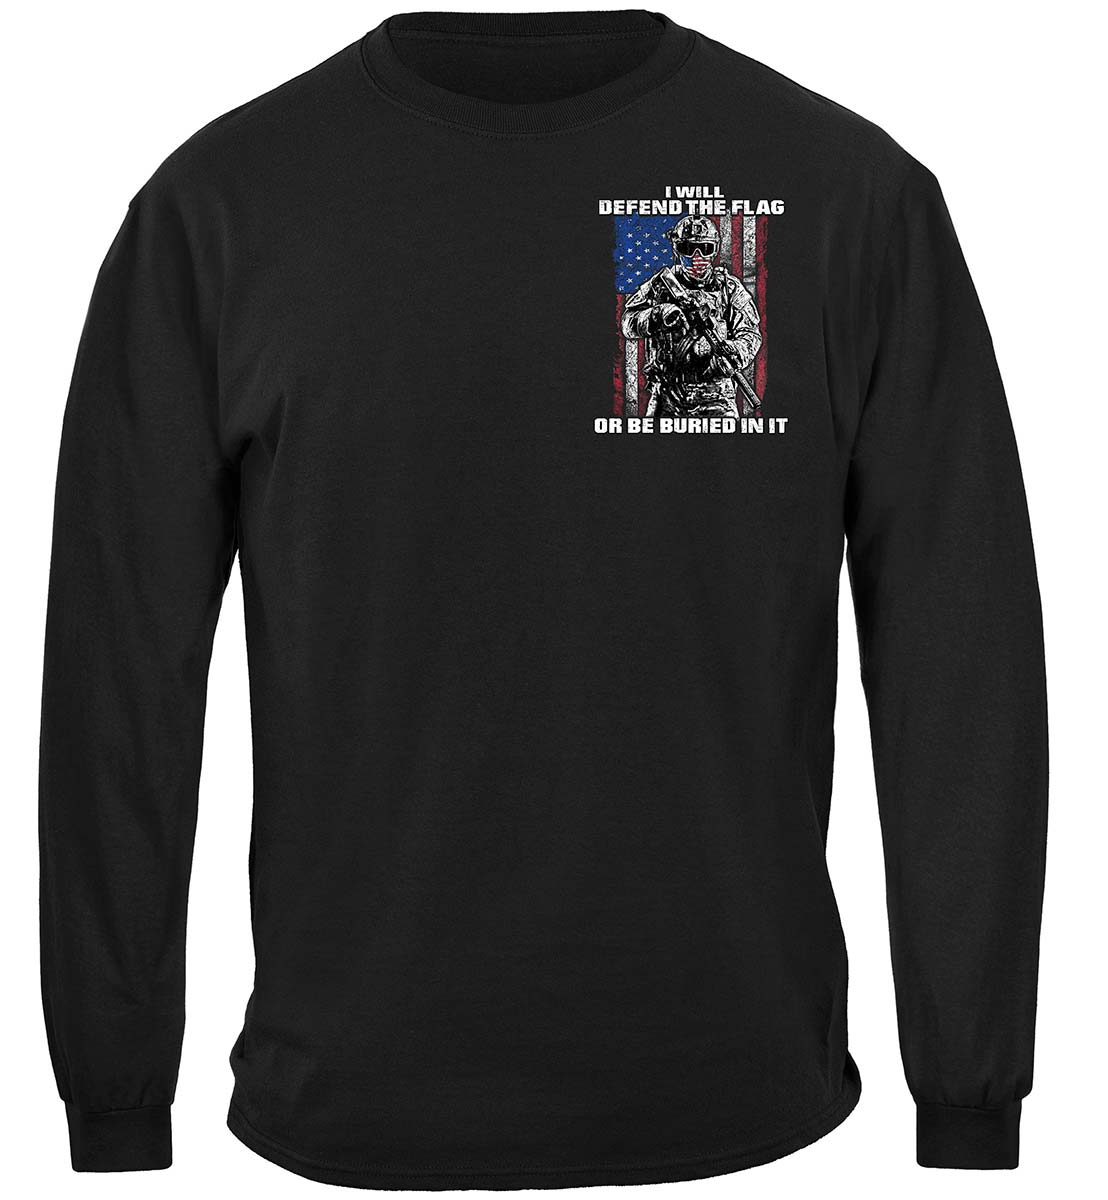 American Flag Defend Or Be Buried Or Be Buried In It Premium Long Sleeves